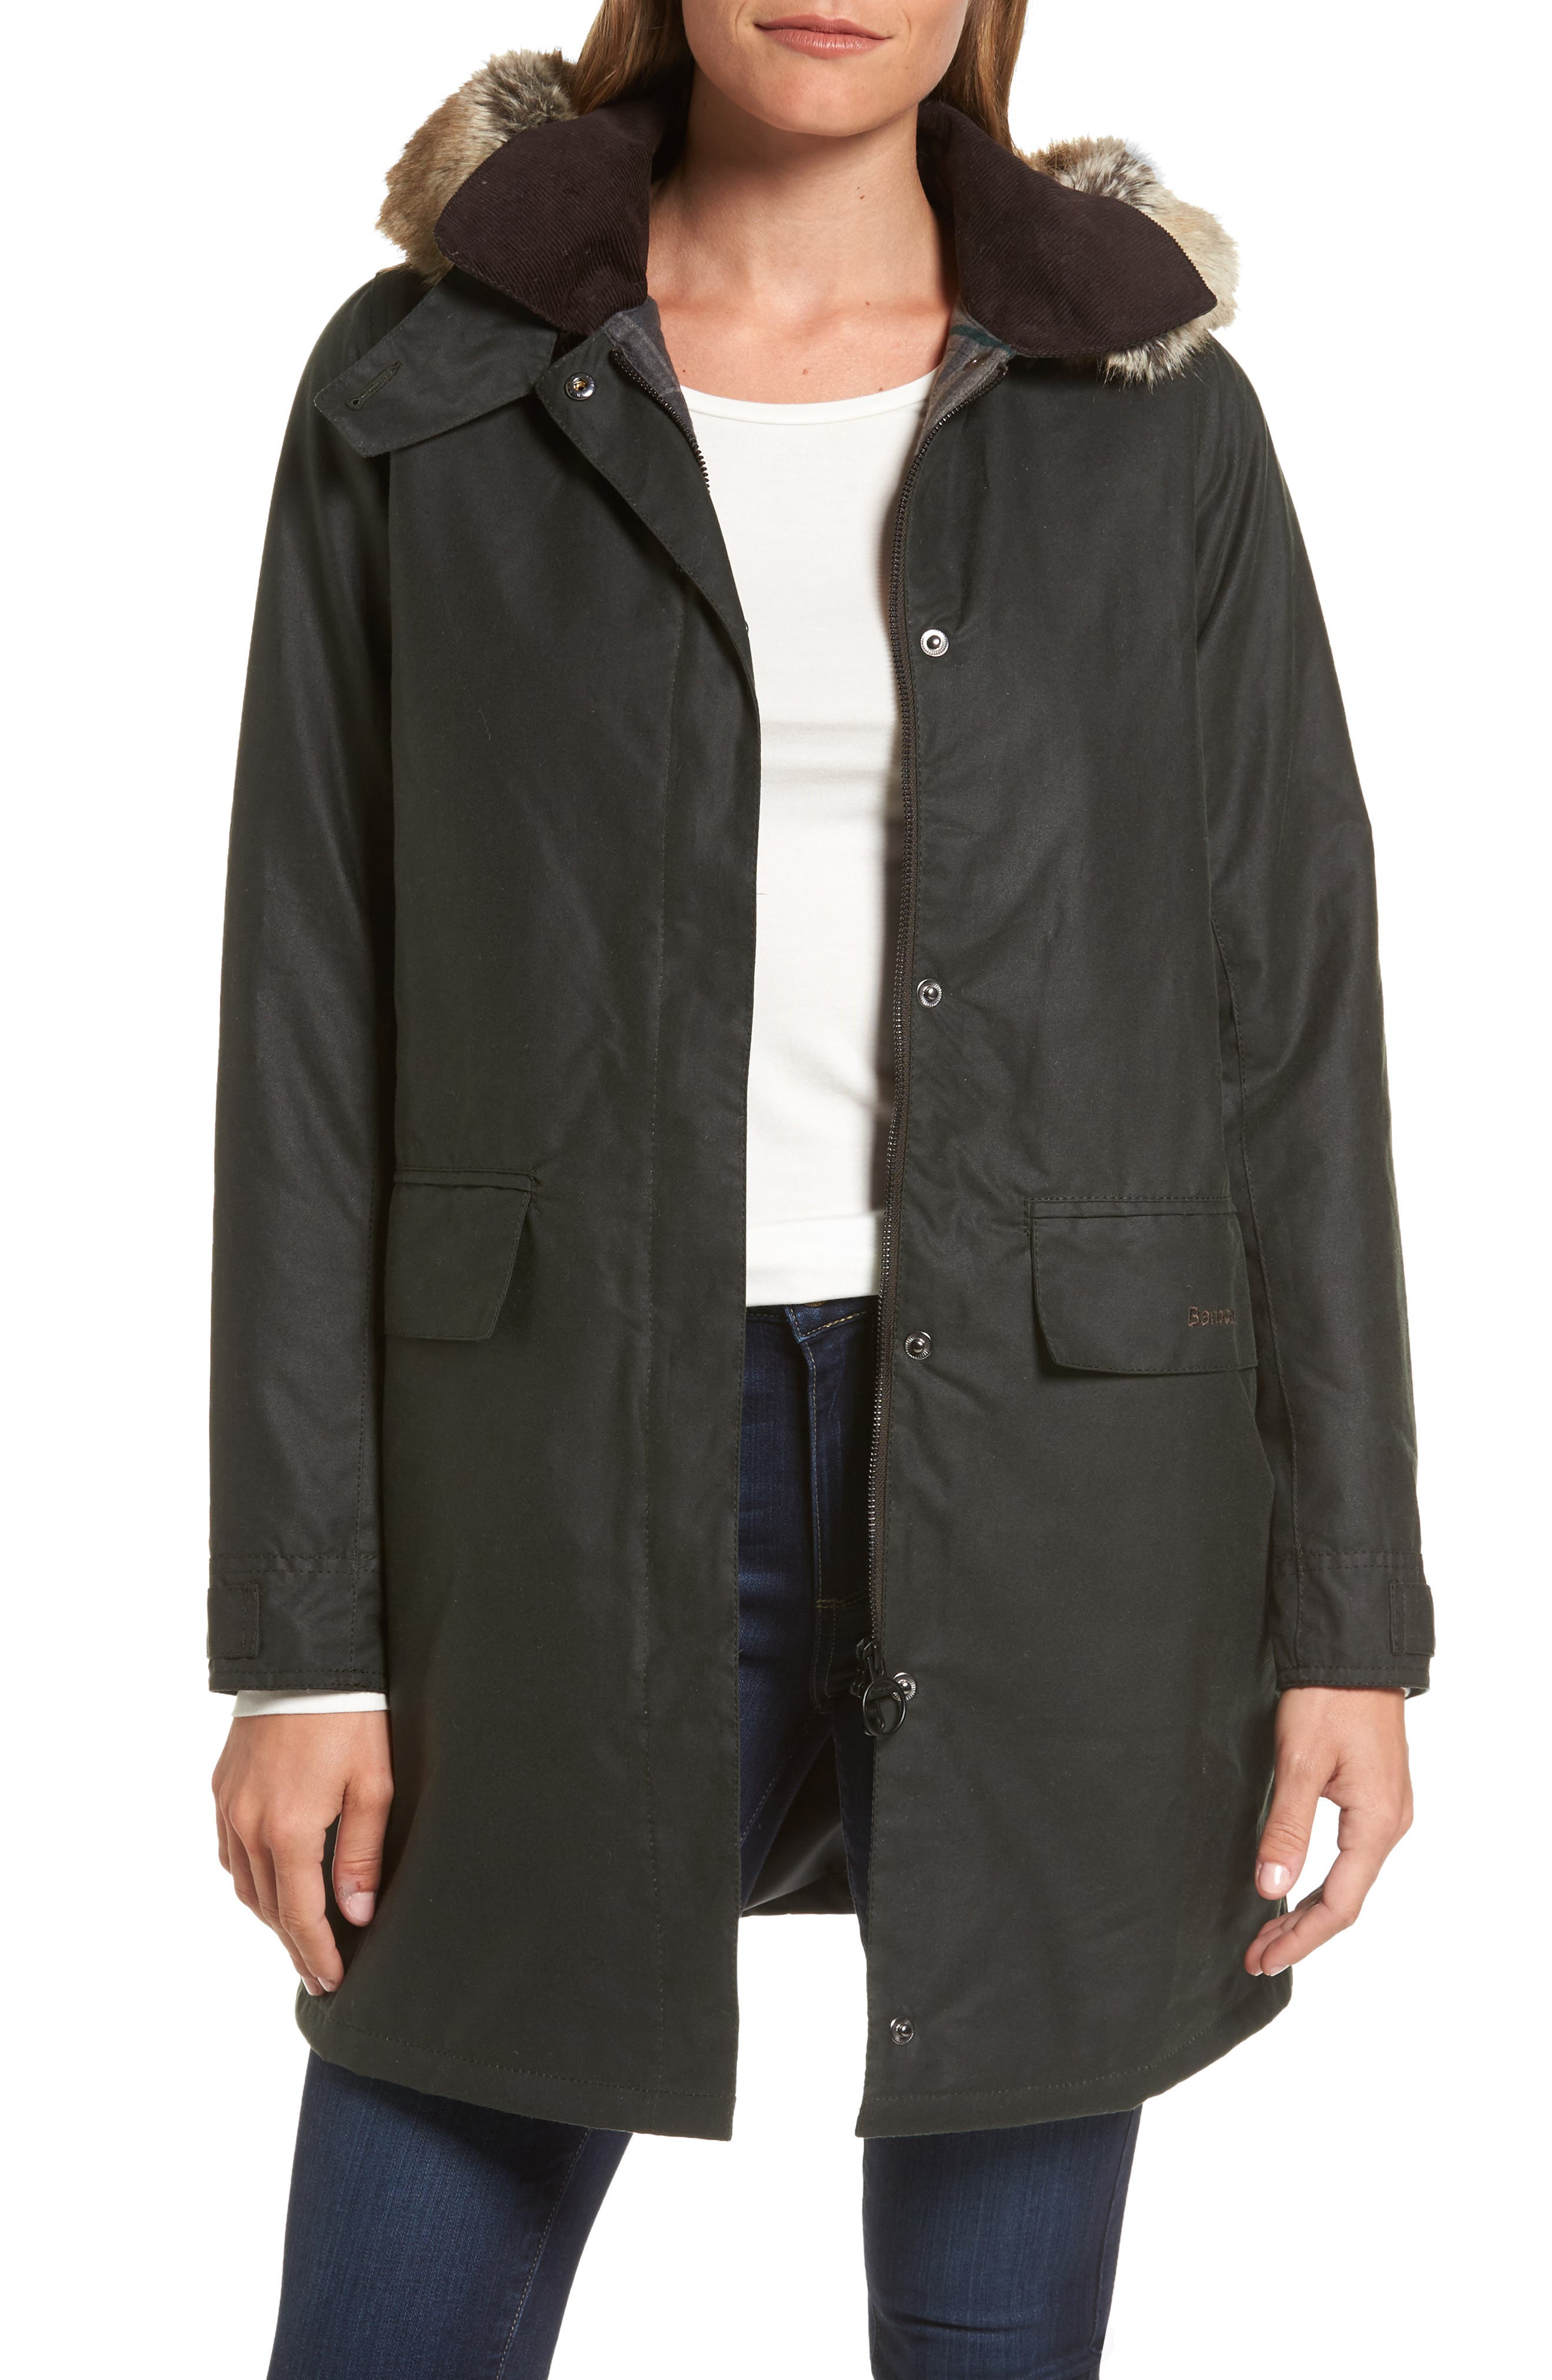 Fortrose Hooded Water Resistant Waxed Canvas Jacket with Faux Fur Trim,                             Main thumbnail 1, color,                             302